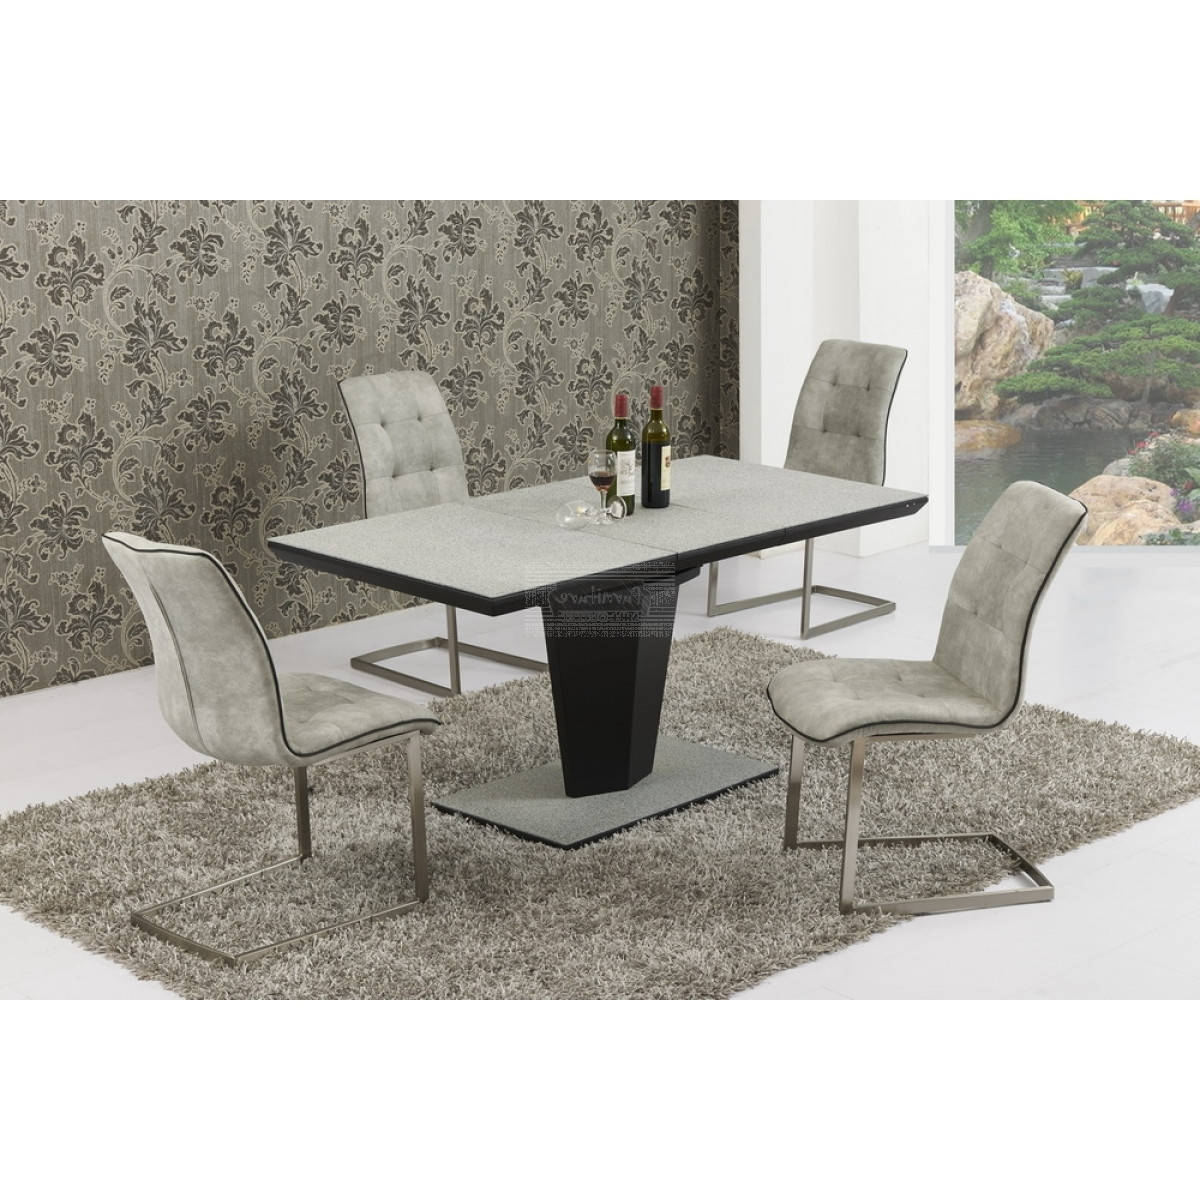 Current Stefano Stone Effect Extending Dining Table 160/220 – Furniture Mill For Marble Effect Dining Tables And Chairs (View 4 of 25)